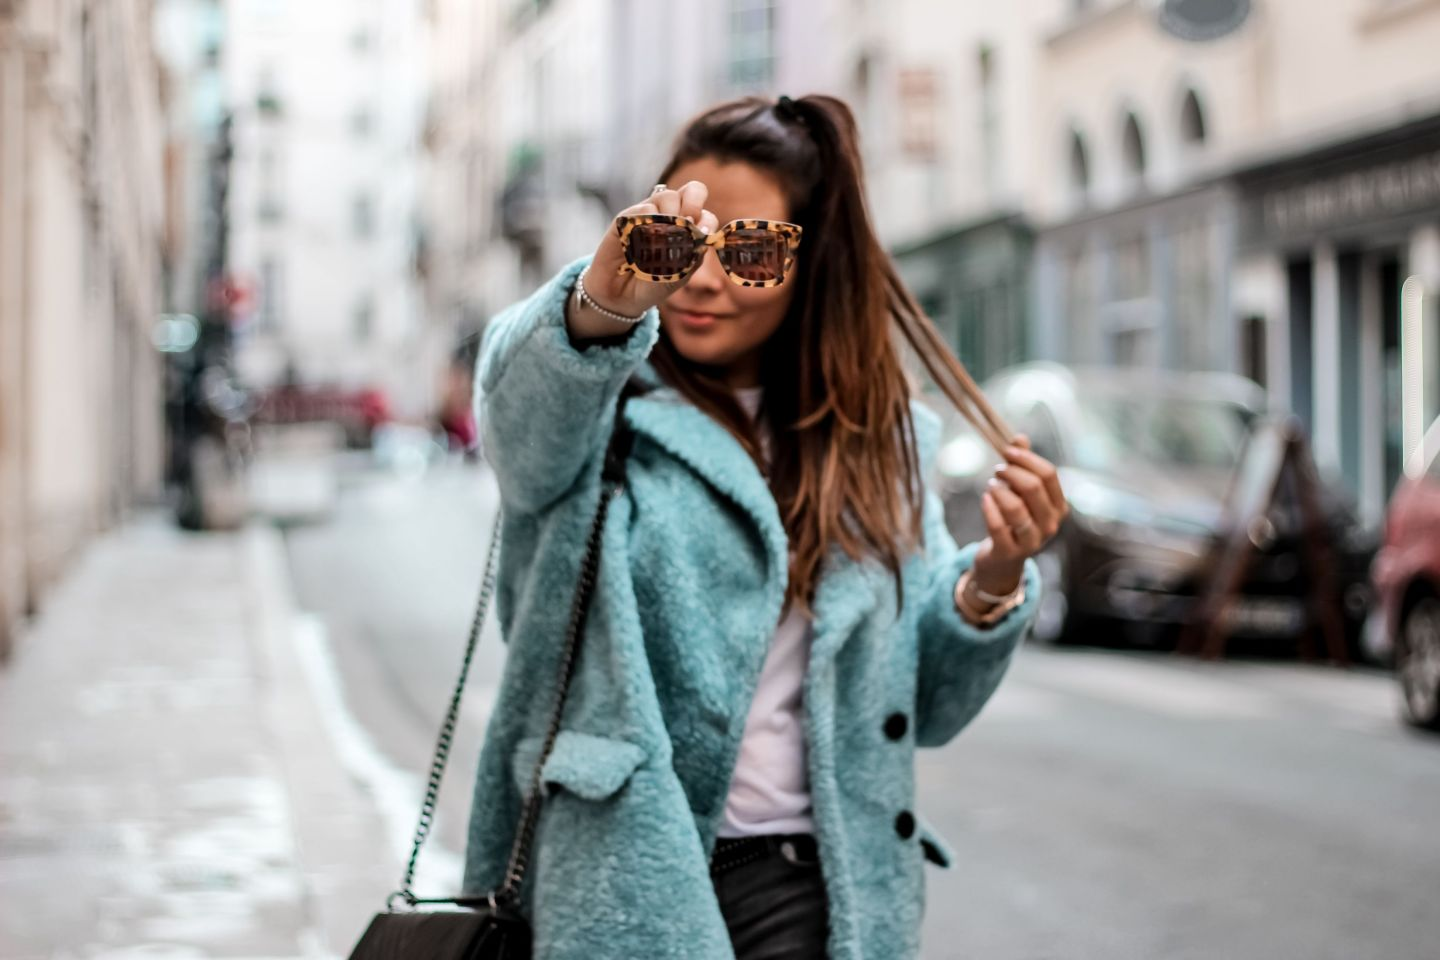 zara, h&m, manteau faux fur, manteau bleu faux fur, macassins femme, mocassins clous, sac inspi chanel, t shirt inspi gucci, the green ananas, blogueuse mode, blog mode, manteau femme, blue mood, cluse, jimmy fairly, caroline receveur